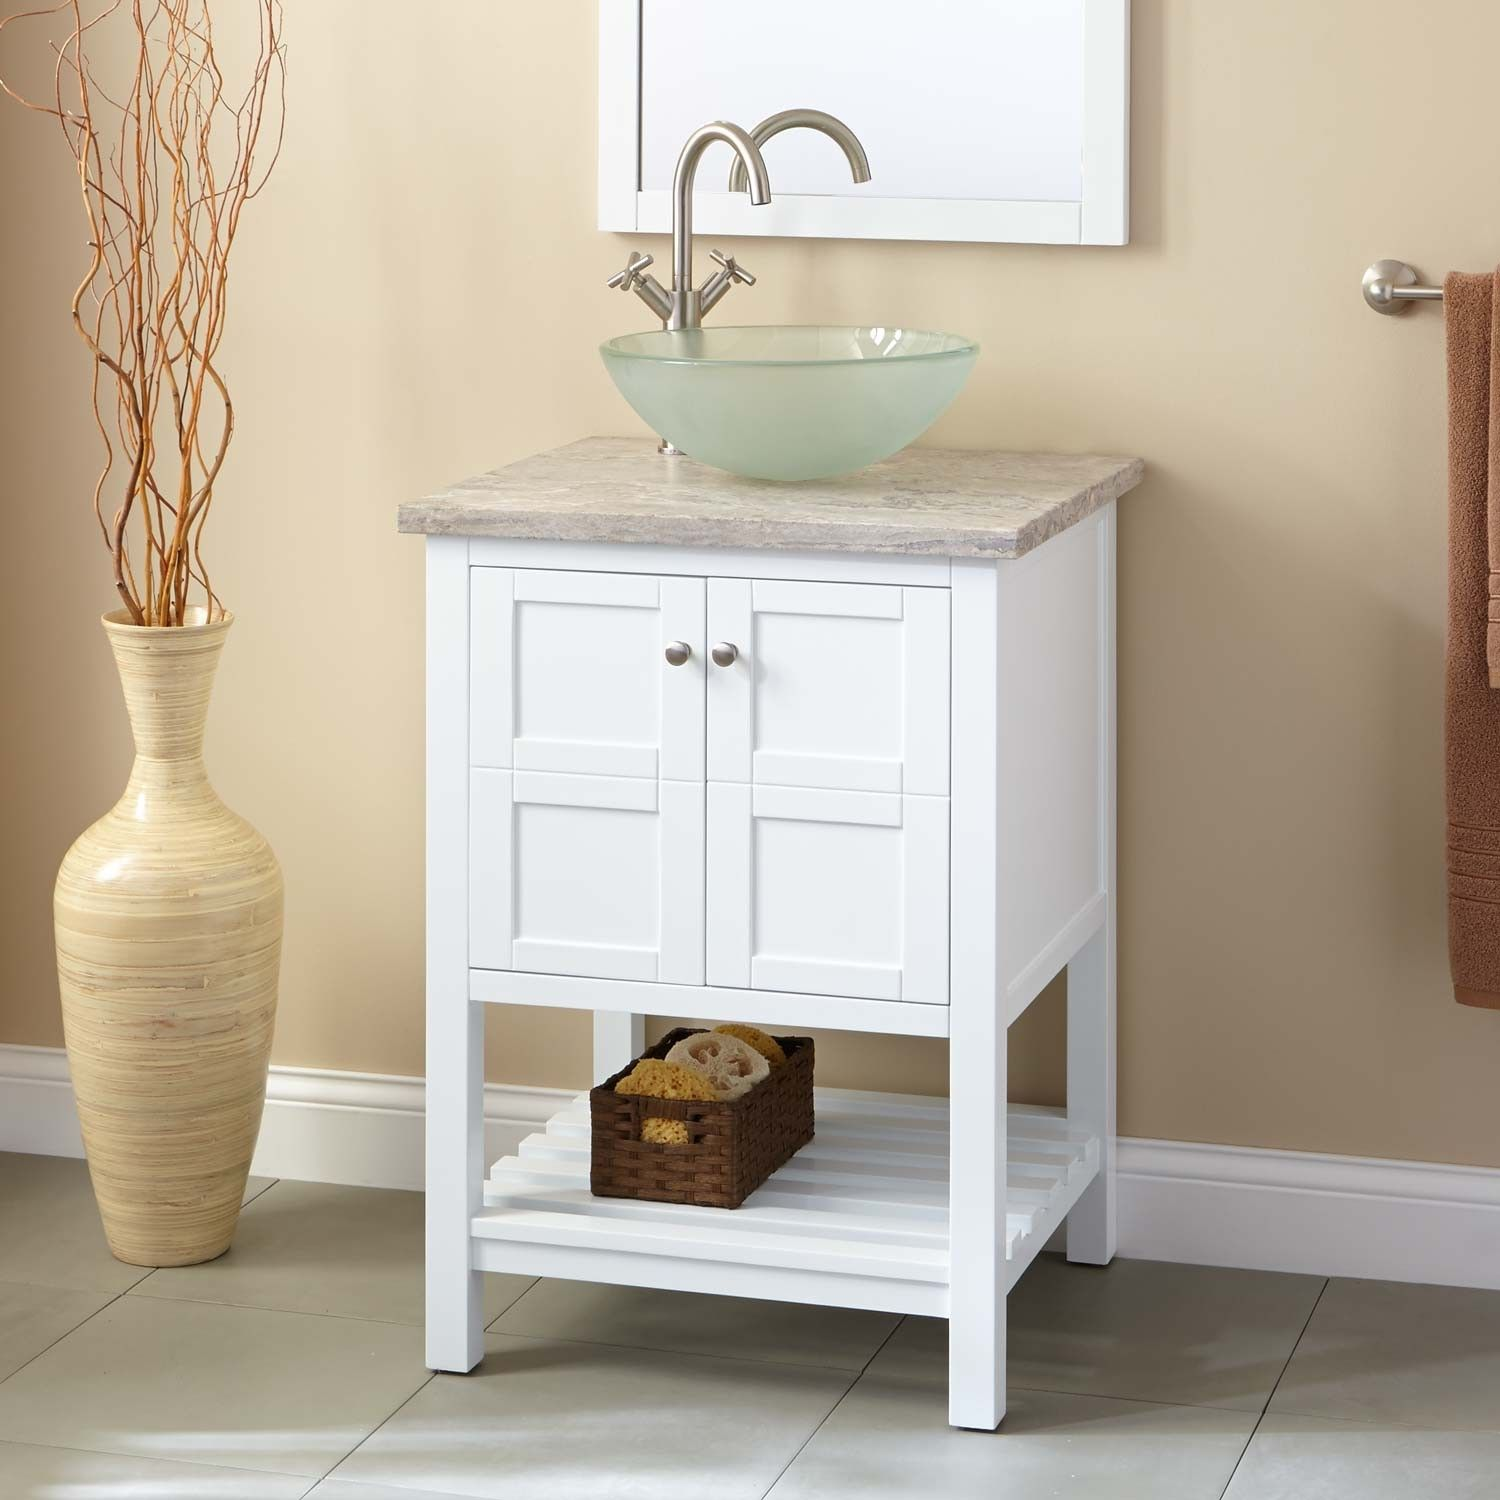 24 Everett Vessel Sink Vanity White 24 Inch Bathroom Vanity Small Bathroom Vanities Bathroom Sink Vanity